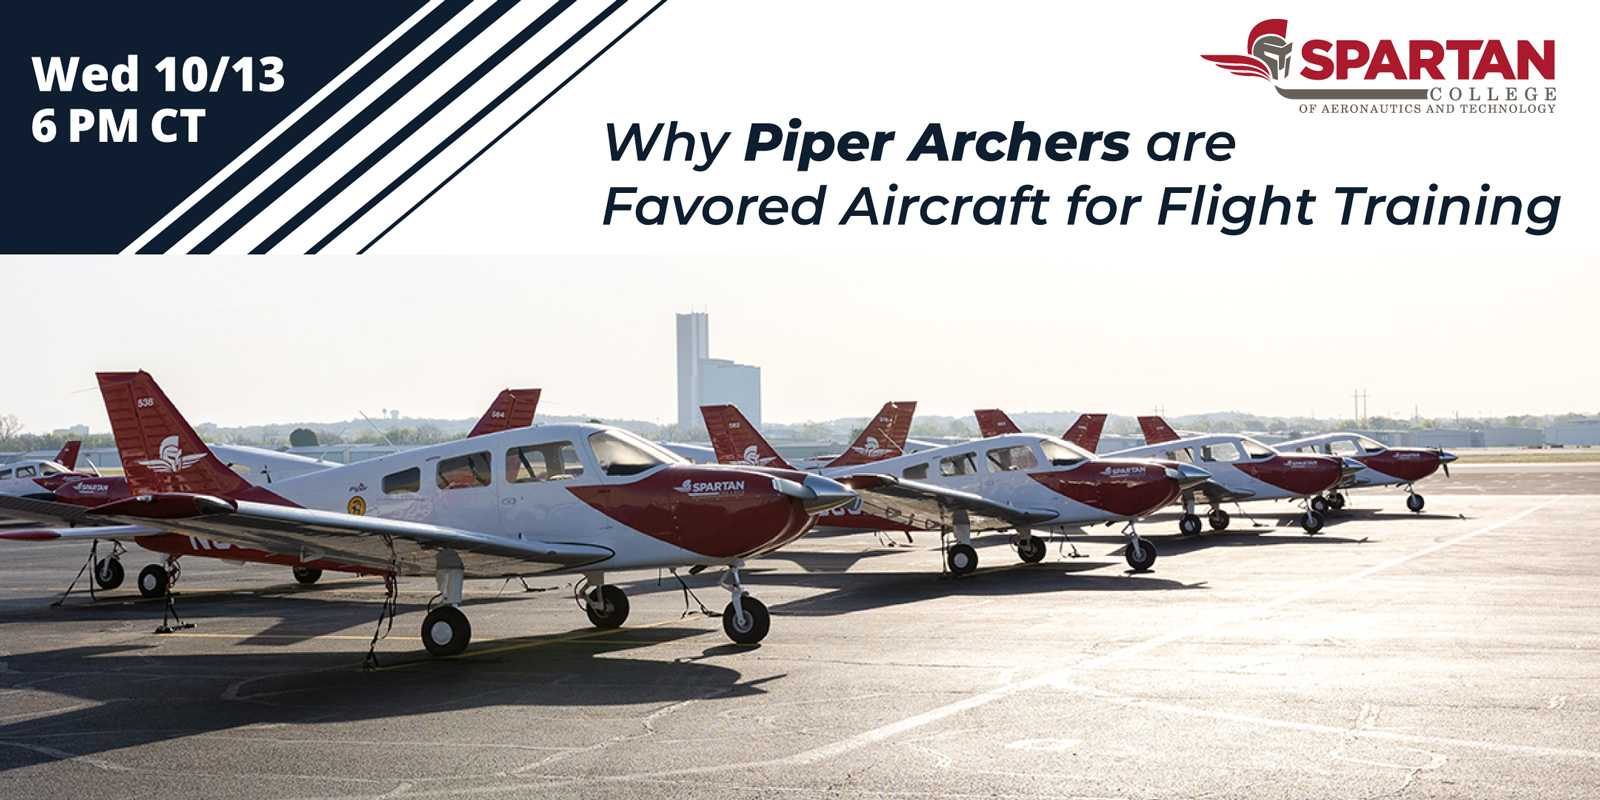 Why Piper Archers are Favored Aircraft for Flight Training Spartan College